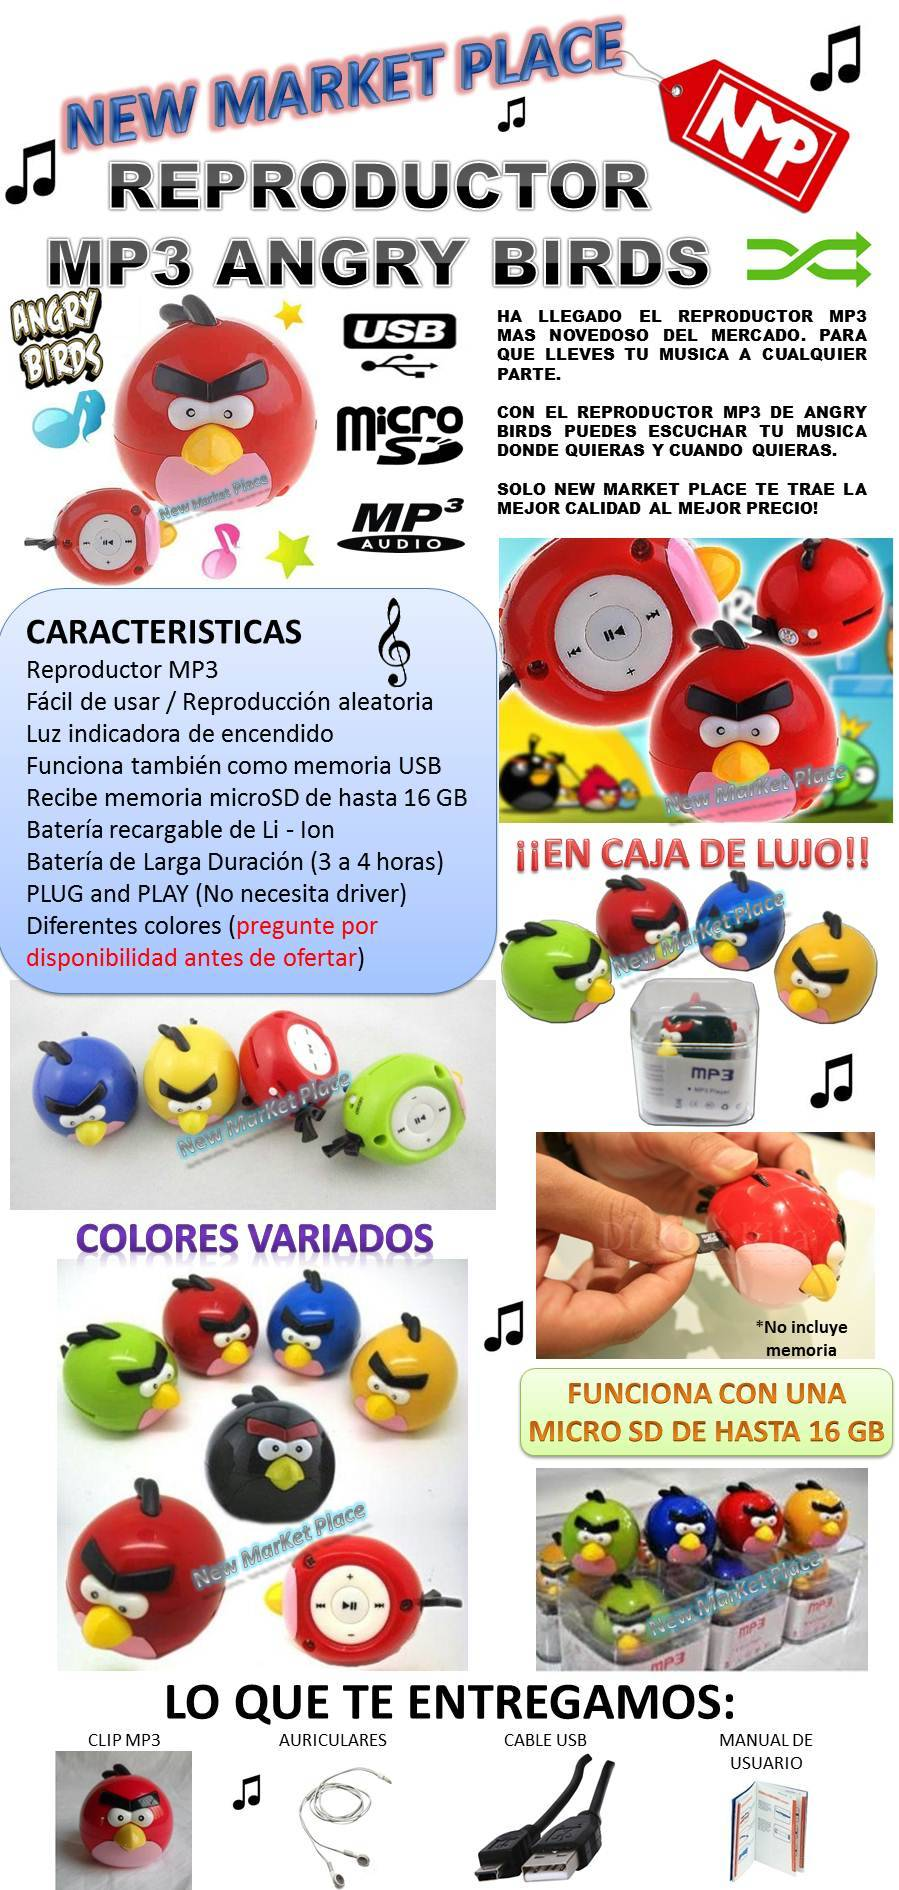 MP3 ANGRY BIRDS